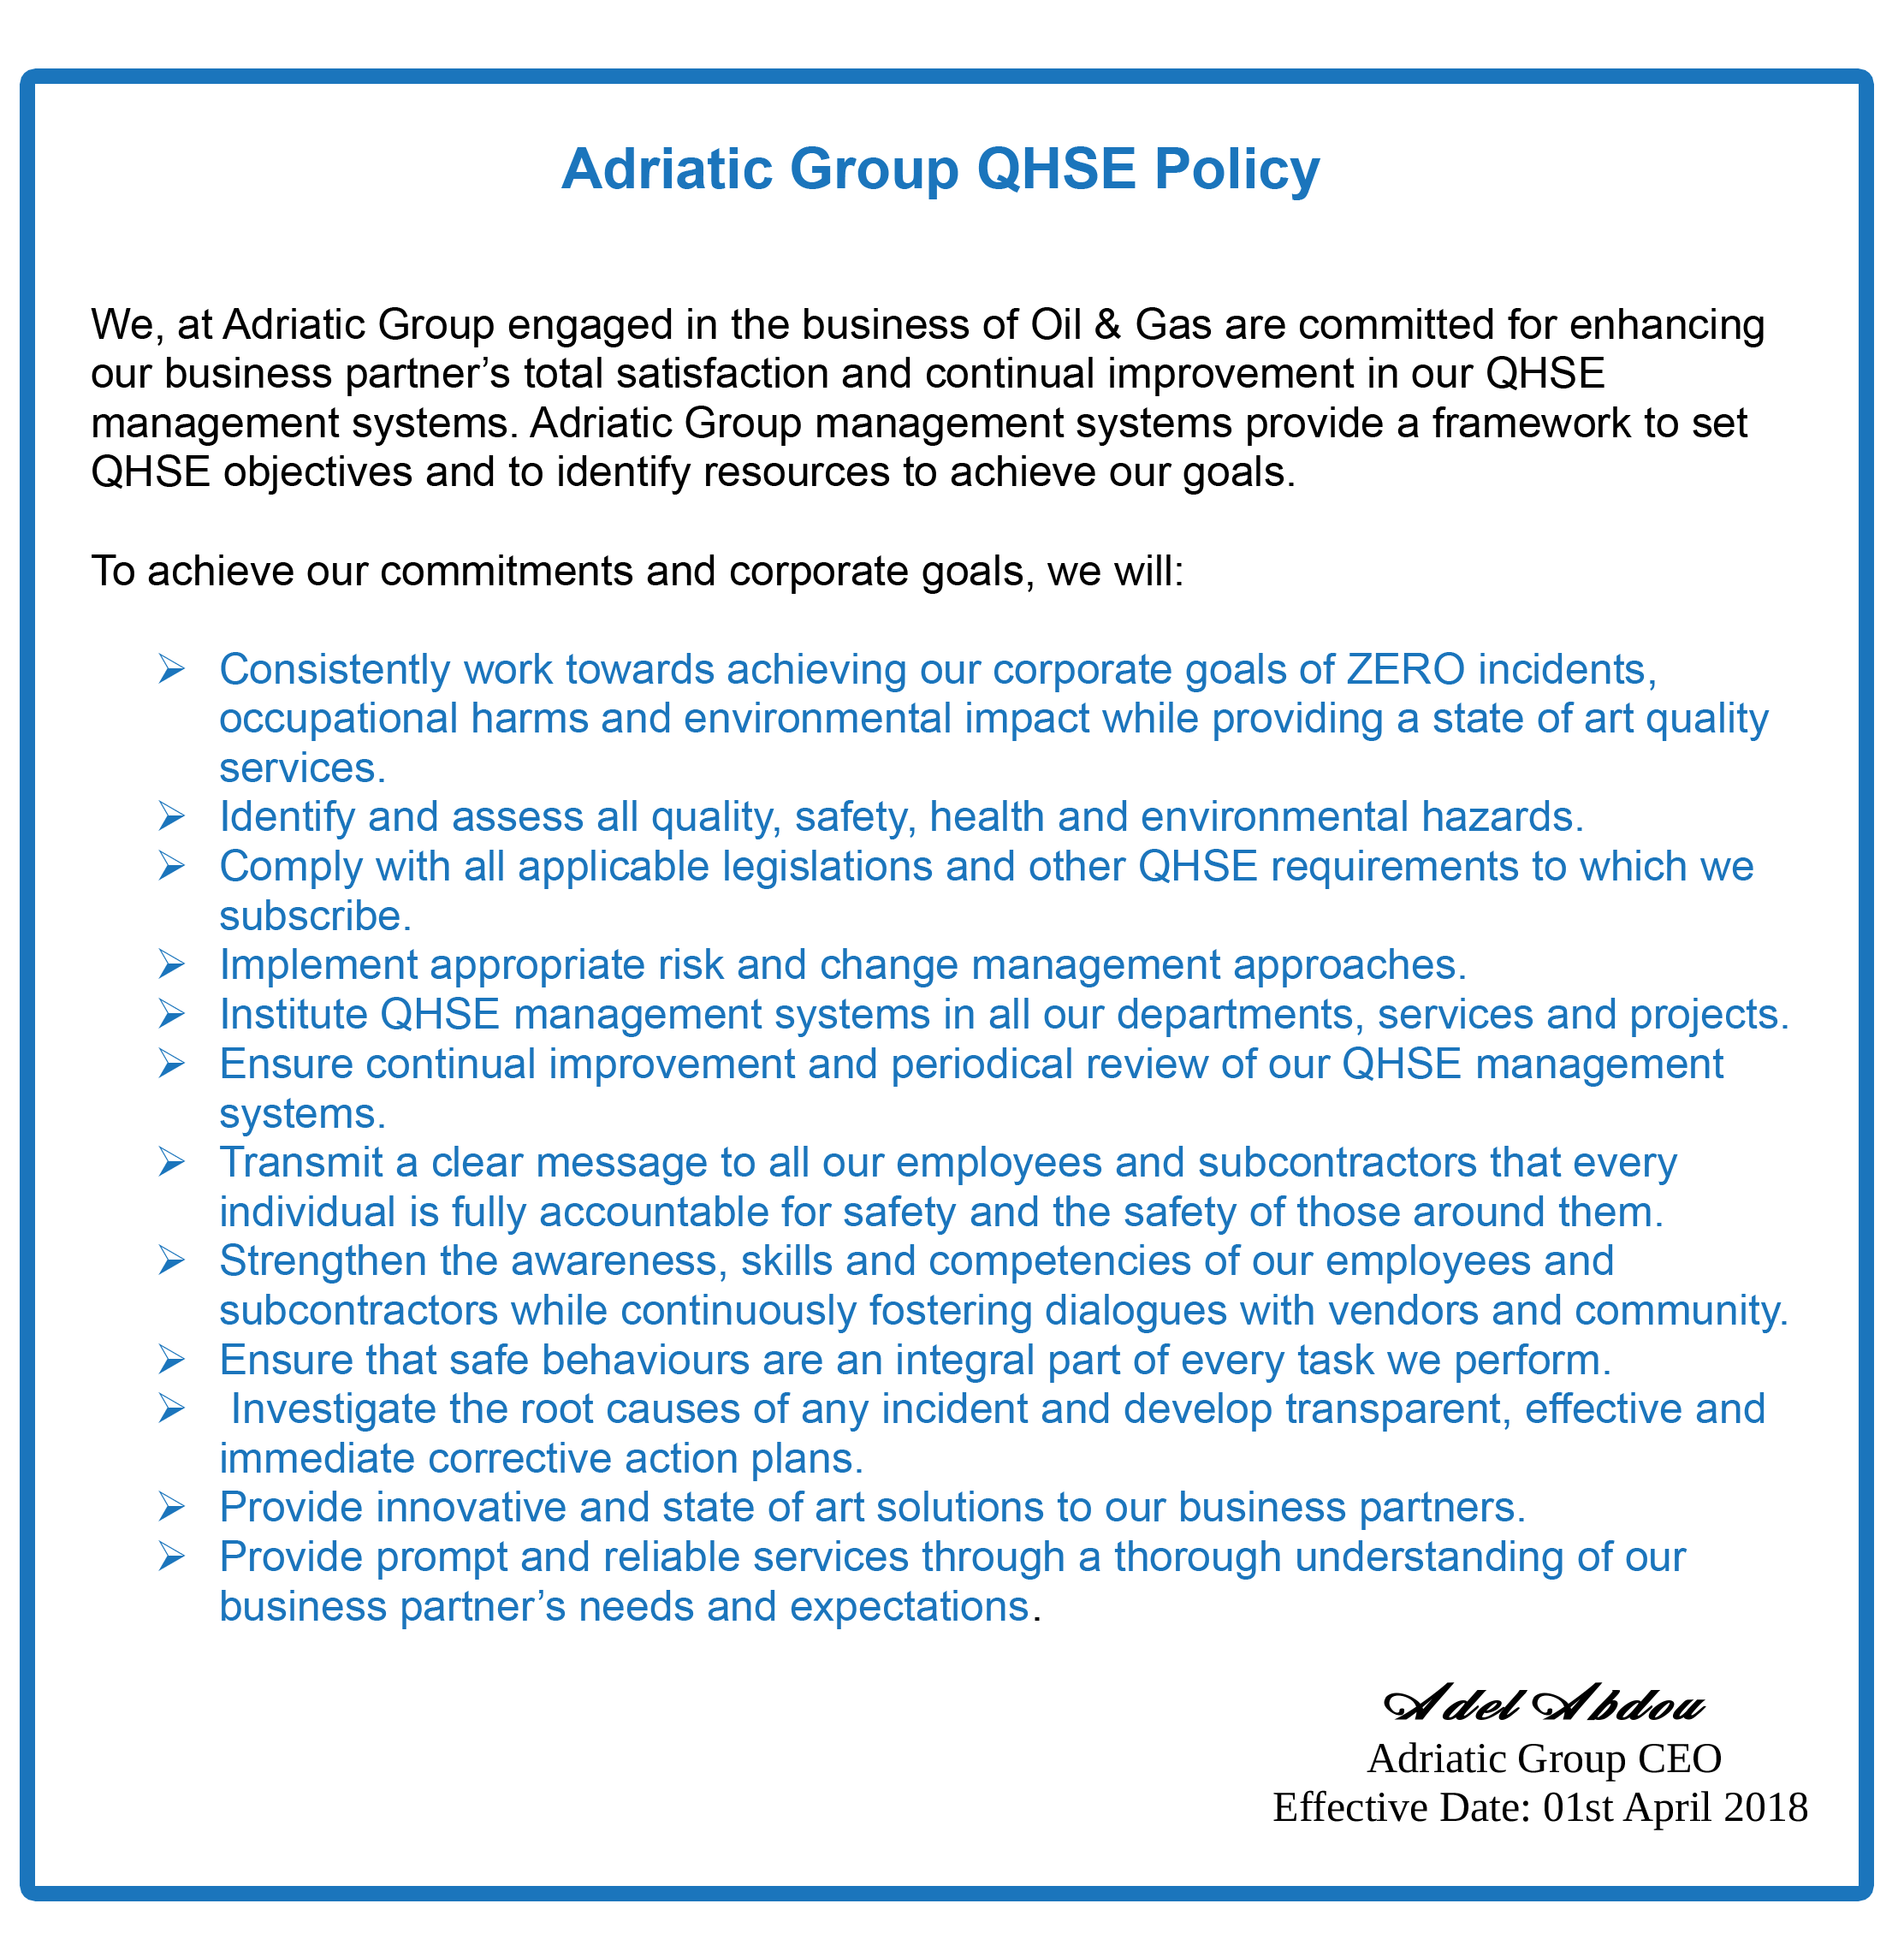 //adriaticgroup.co.uk/wp-content/uploads/2018/05/QHSE-1.png